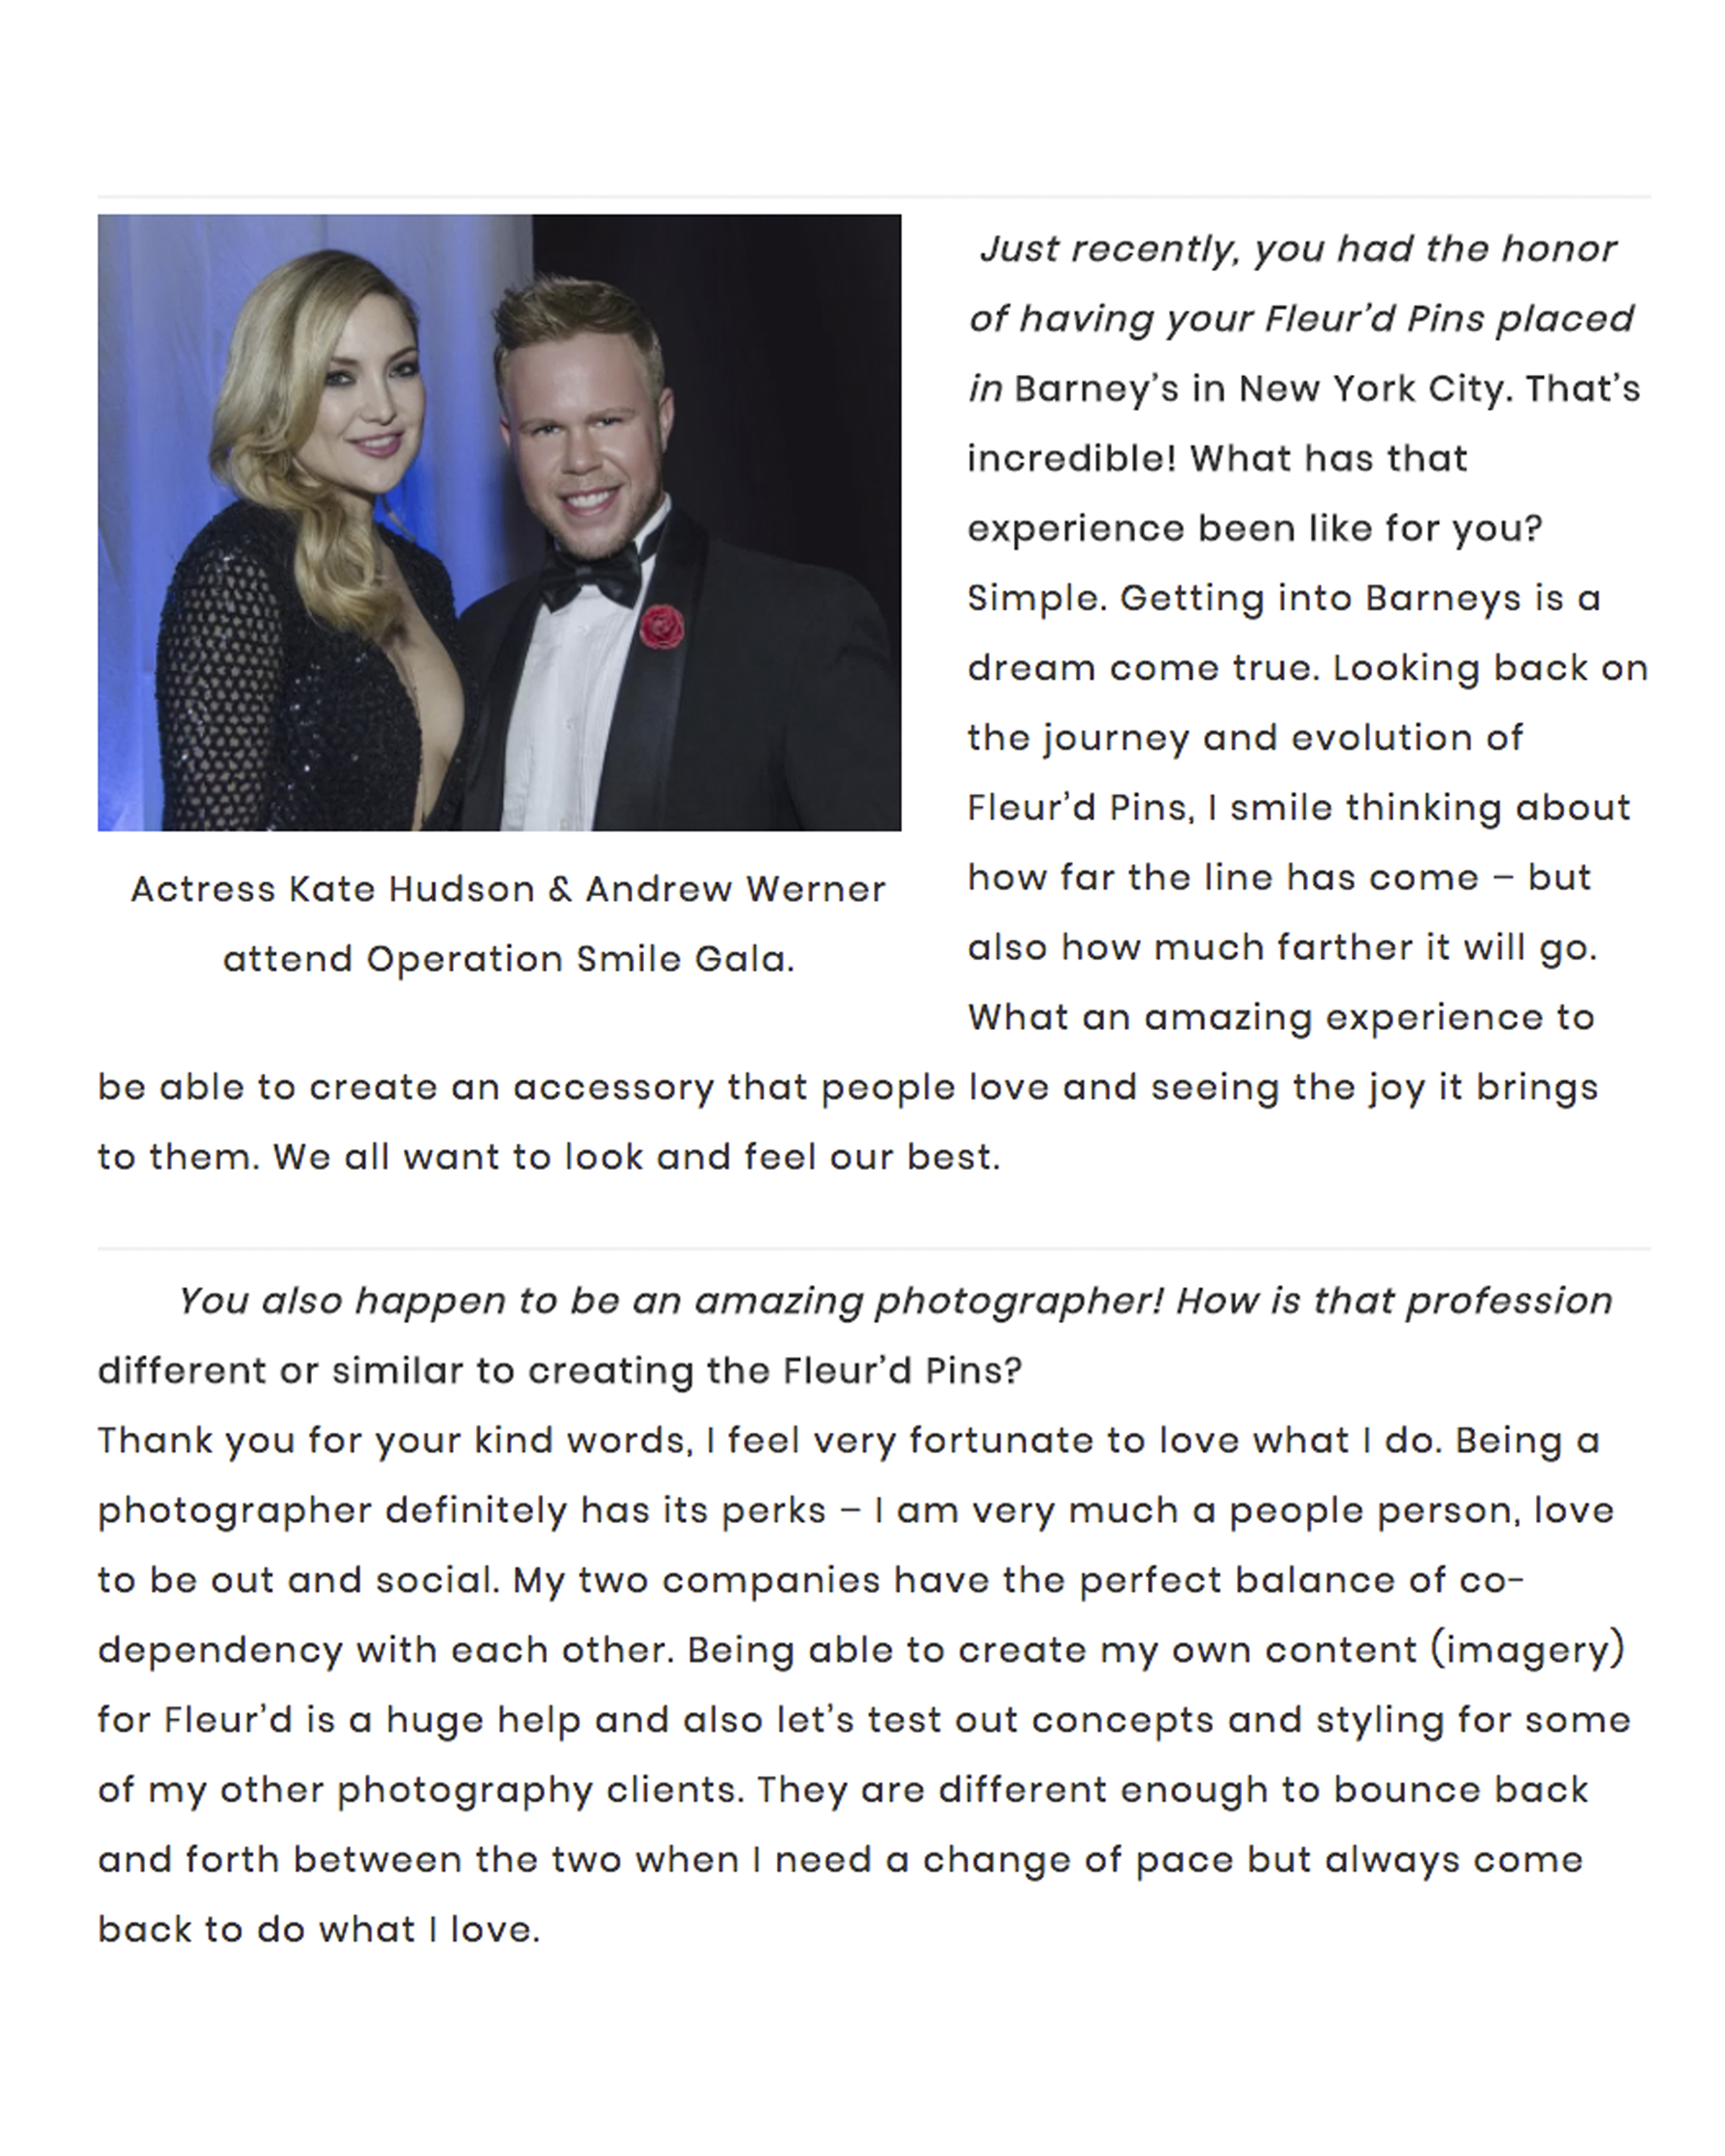 Luxury Chapters Interviews Photographer Andrew Werner on Fleur'd Pins - page 4.jpg